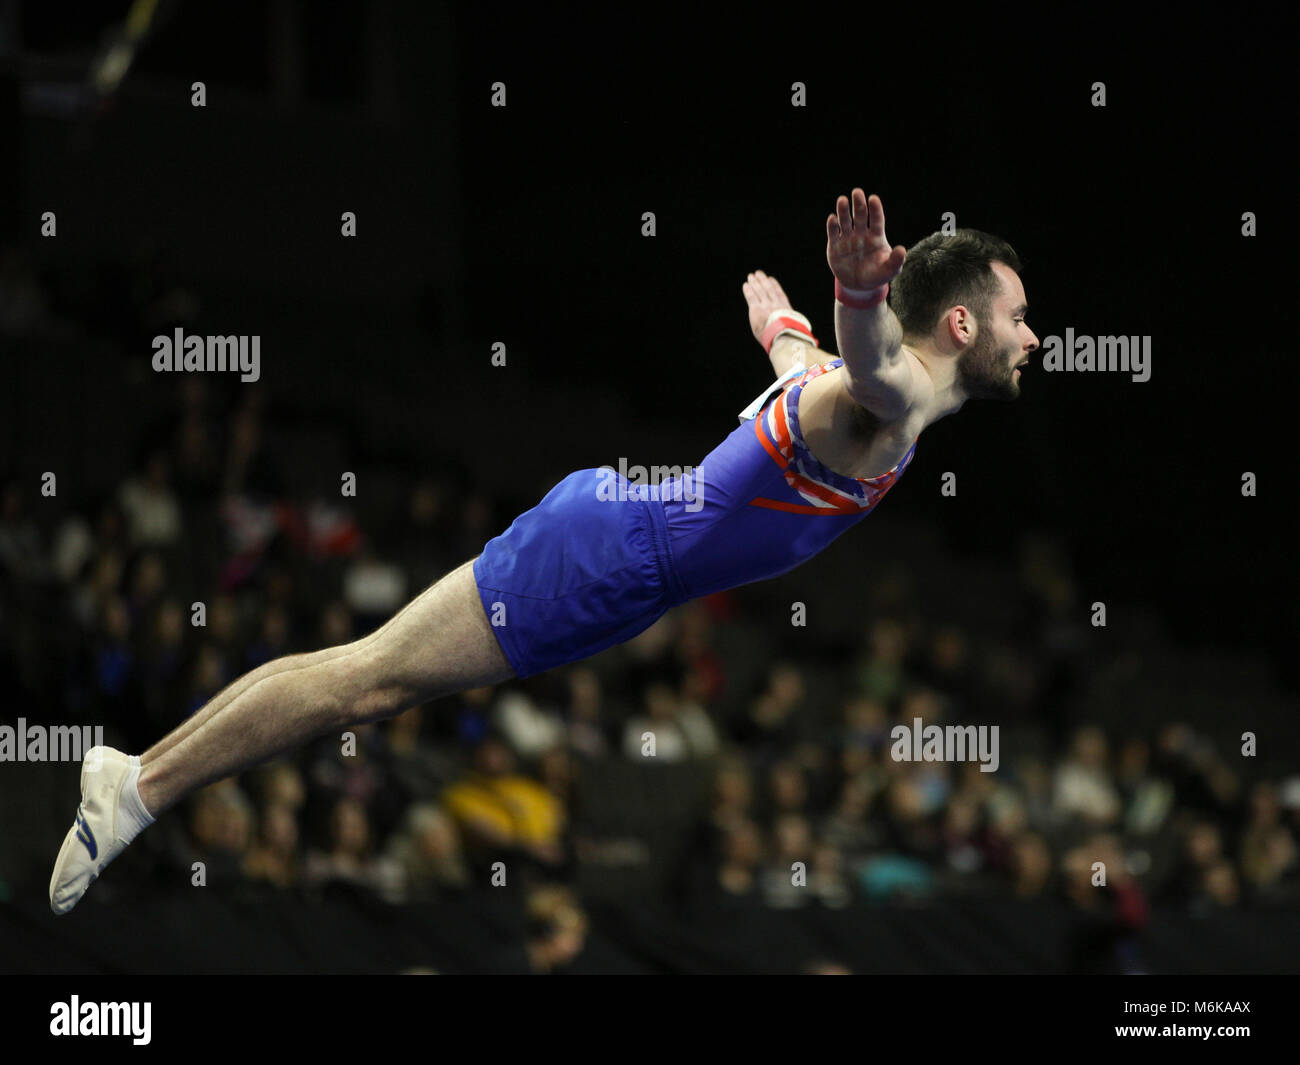 March 3, 2018: Gymnast James Hall (GBR) during the 2018 American Cup gymnastics championships, held in Hoffman Estates, - Stock Image